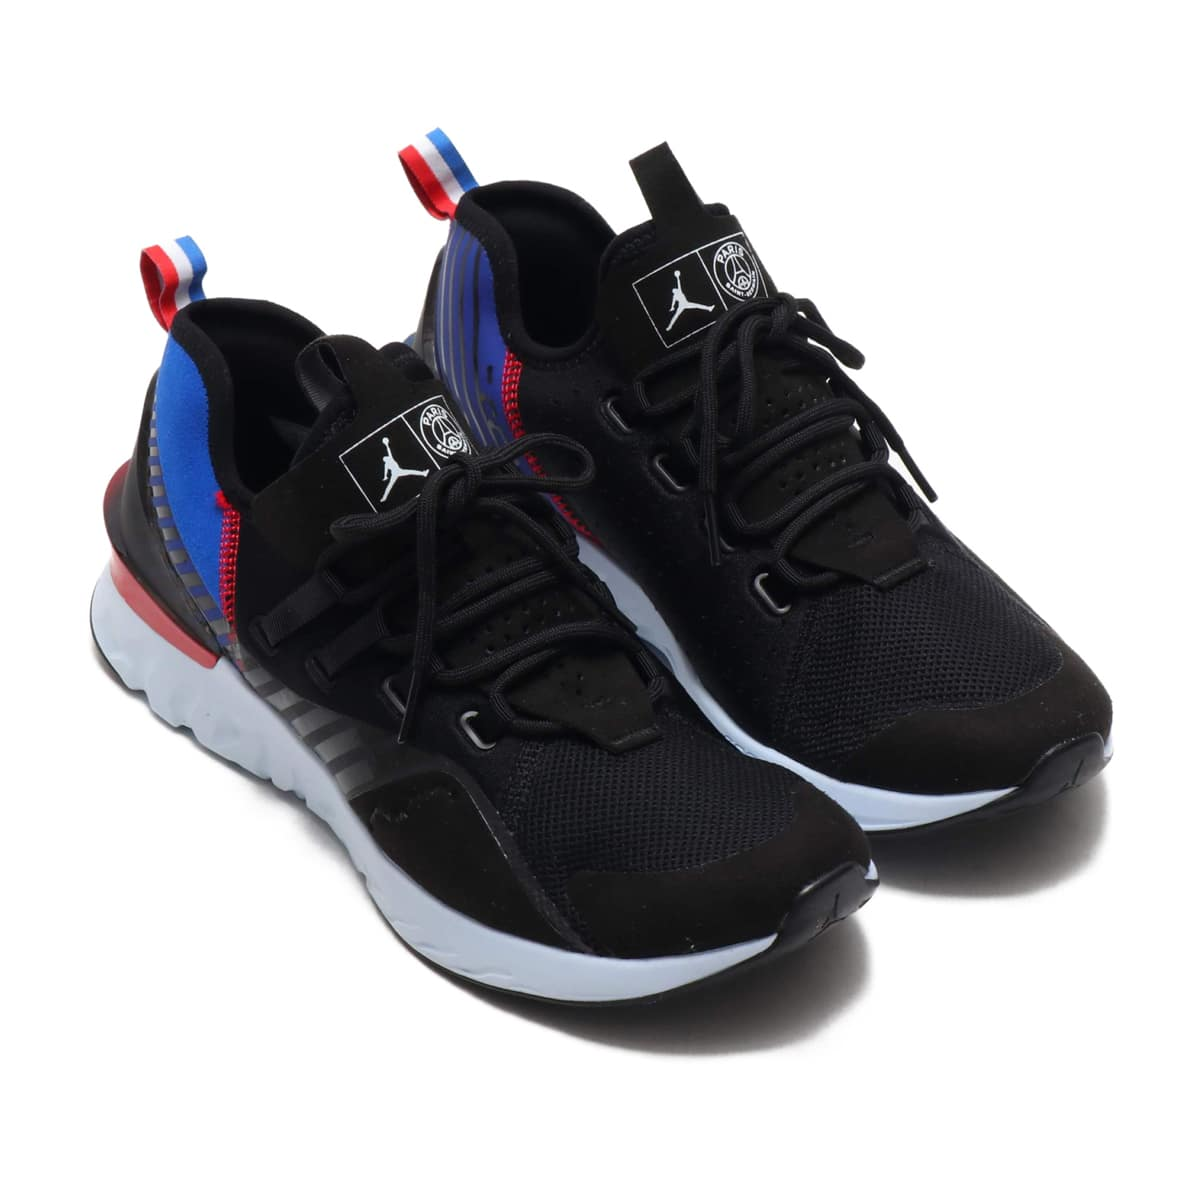 JORDAN BRAND JORDAN REACT HAVOC SE PSG BLACK/WHITE-HYPER COBALT-UNIVERSITY RED 20SP-S_photo_large